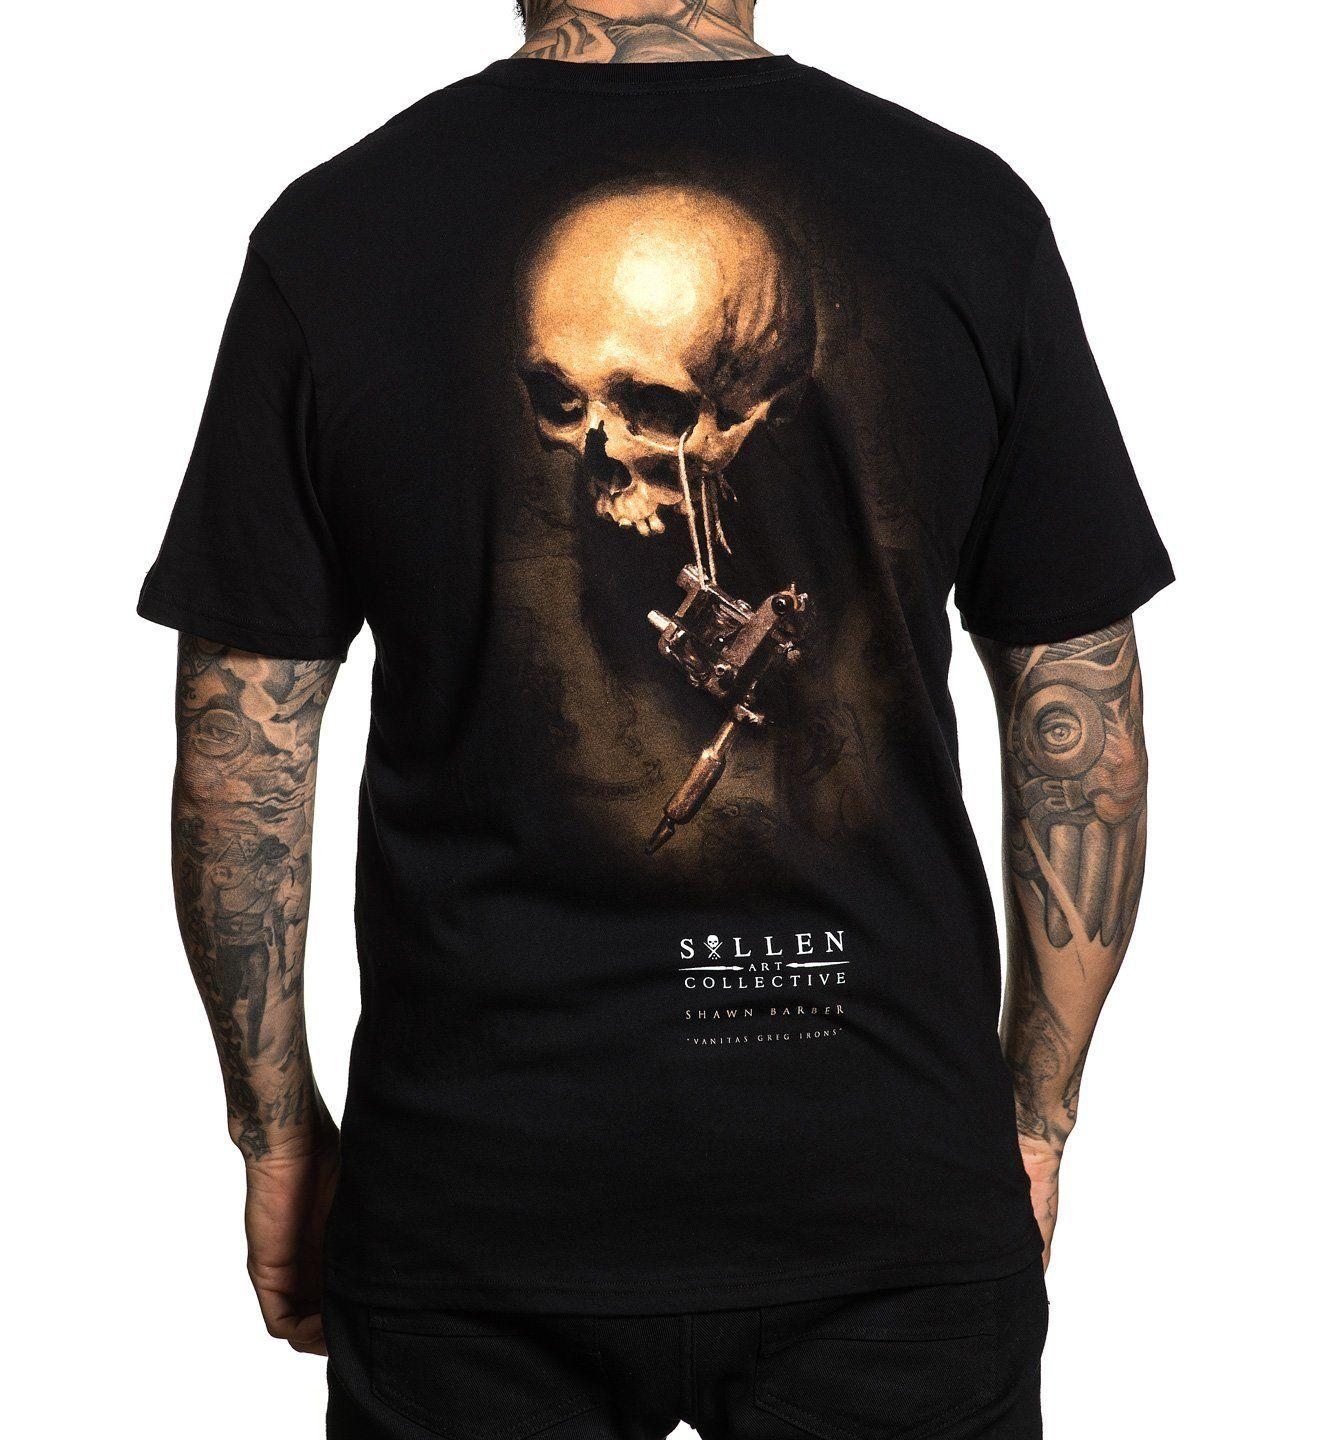 ecbaef929f1 SULLEN GREG IRONS REALISM HUMAN SKULL TATTOO MACHINE BLACK Mens 2018  Fashionable Brand 100%cotton T Shirt Printing Really Cool T Shirts Online  Shopping T ...